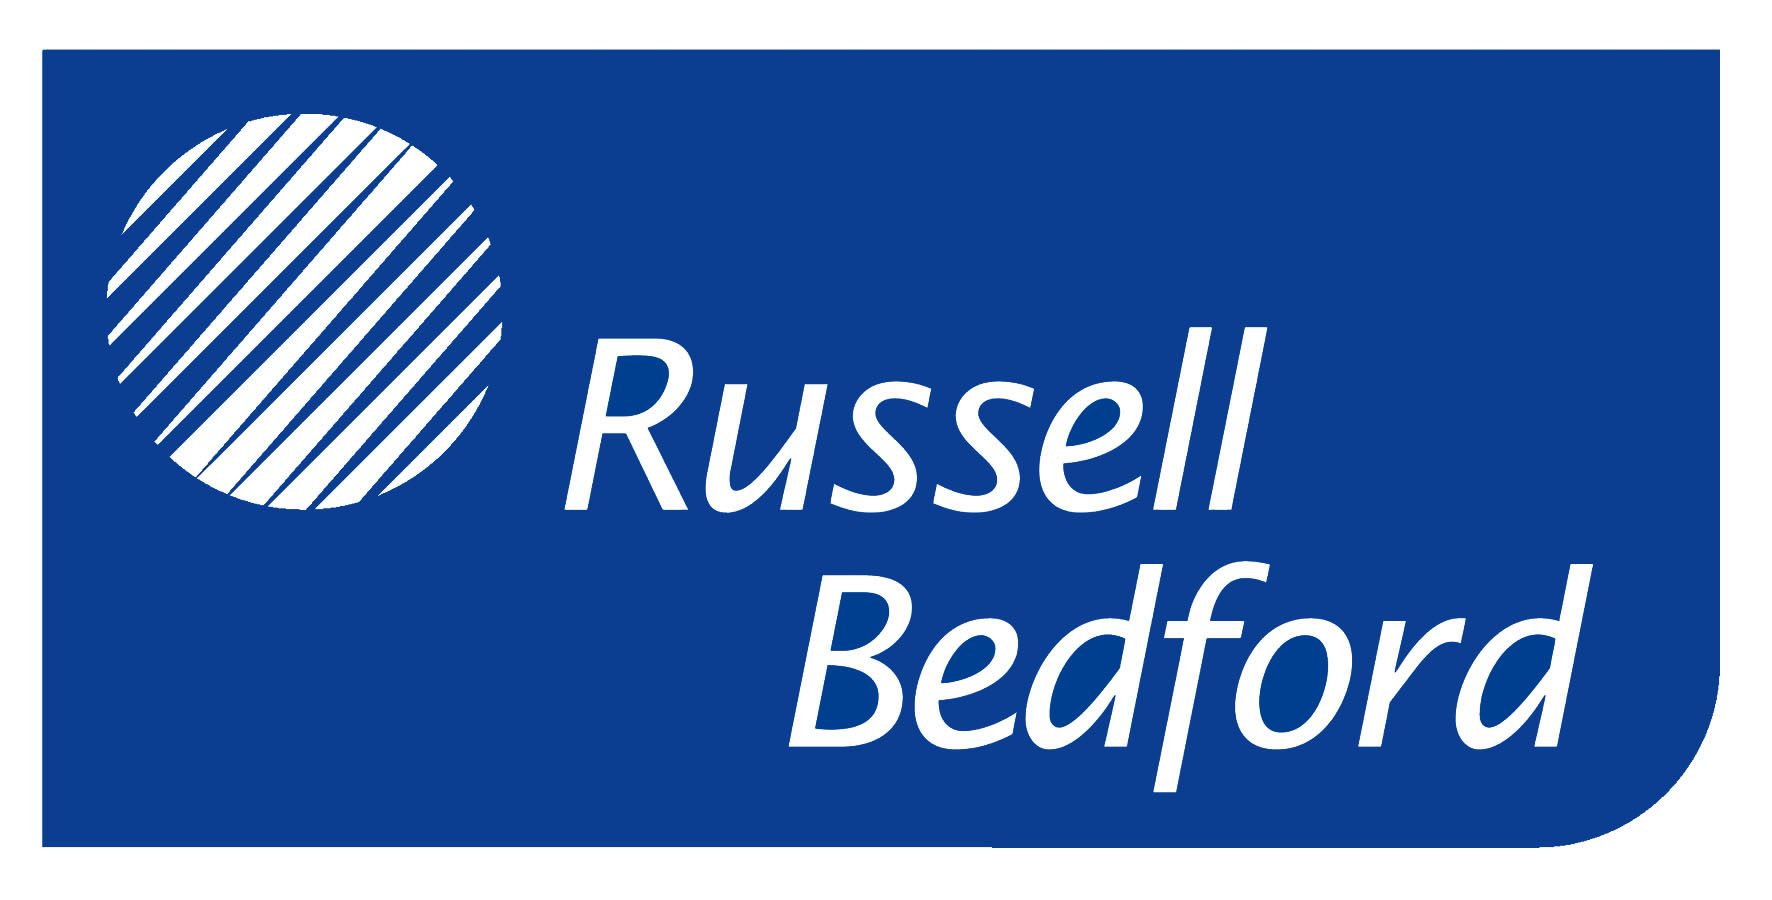 Russell Bedford Newhairstylesformen2014 Com